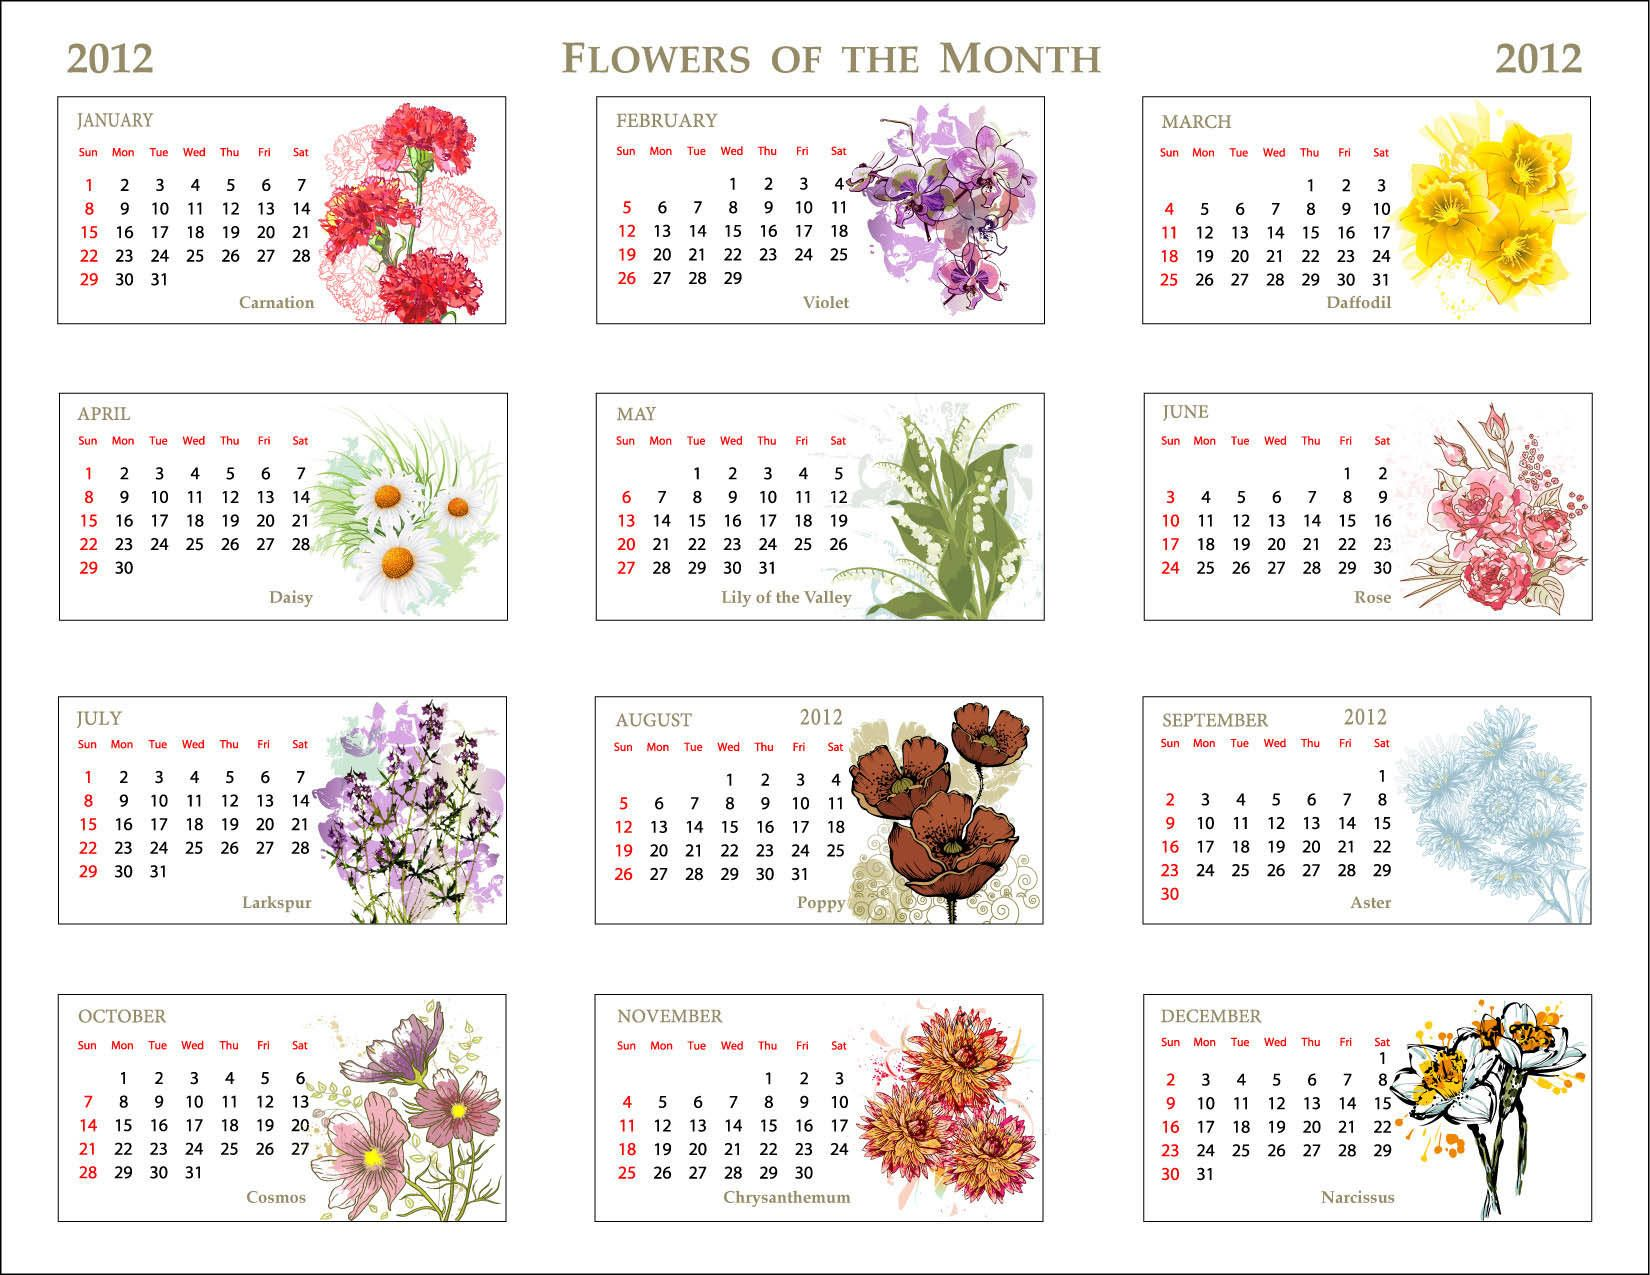 Unique calendar featuring the flowers of the month meaning of pictures flowers meaning google search izmirmasajfo